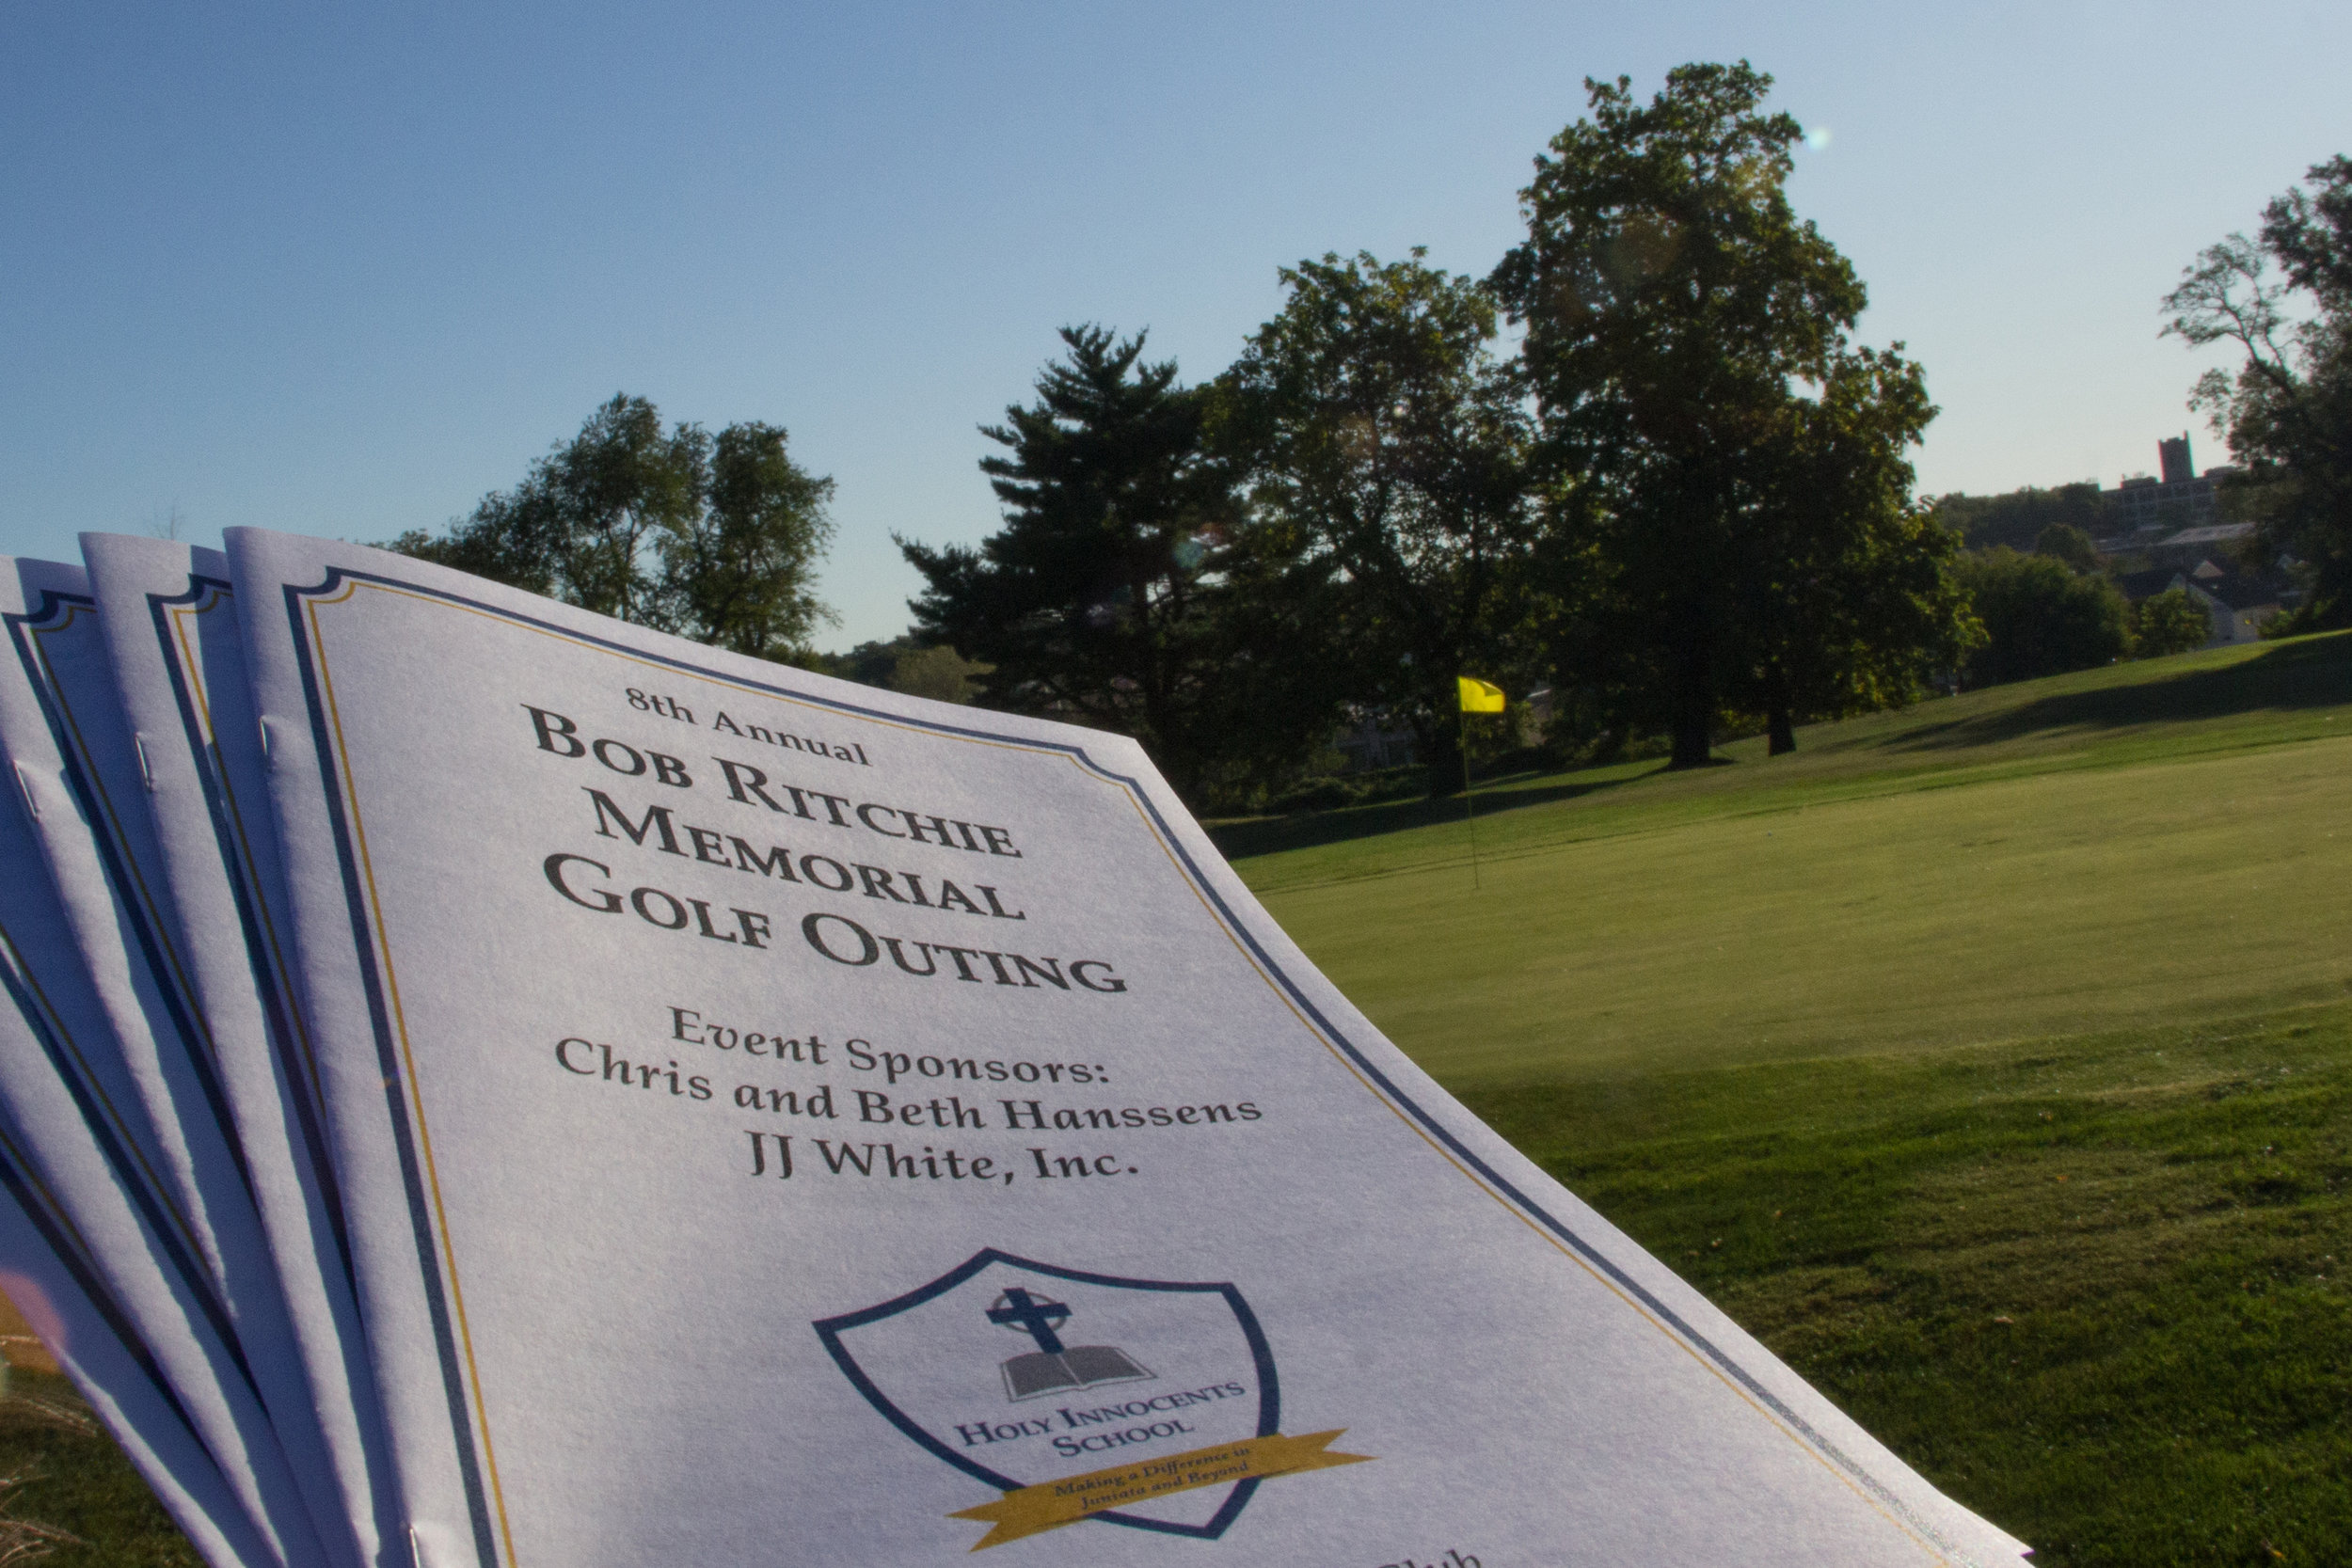 Bob Ritchie Memorial Golf Outing